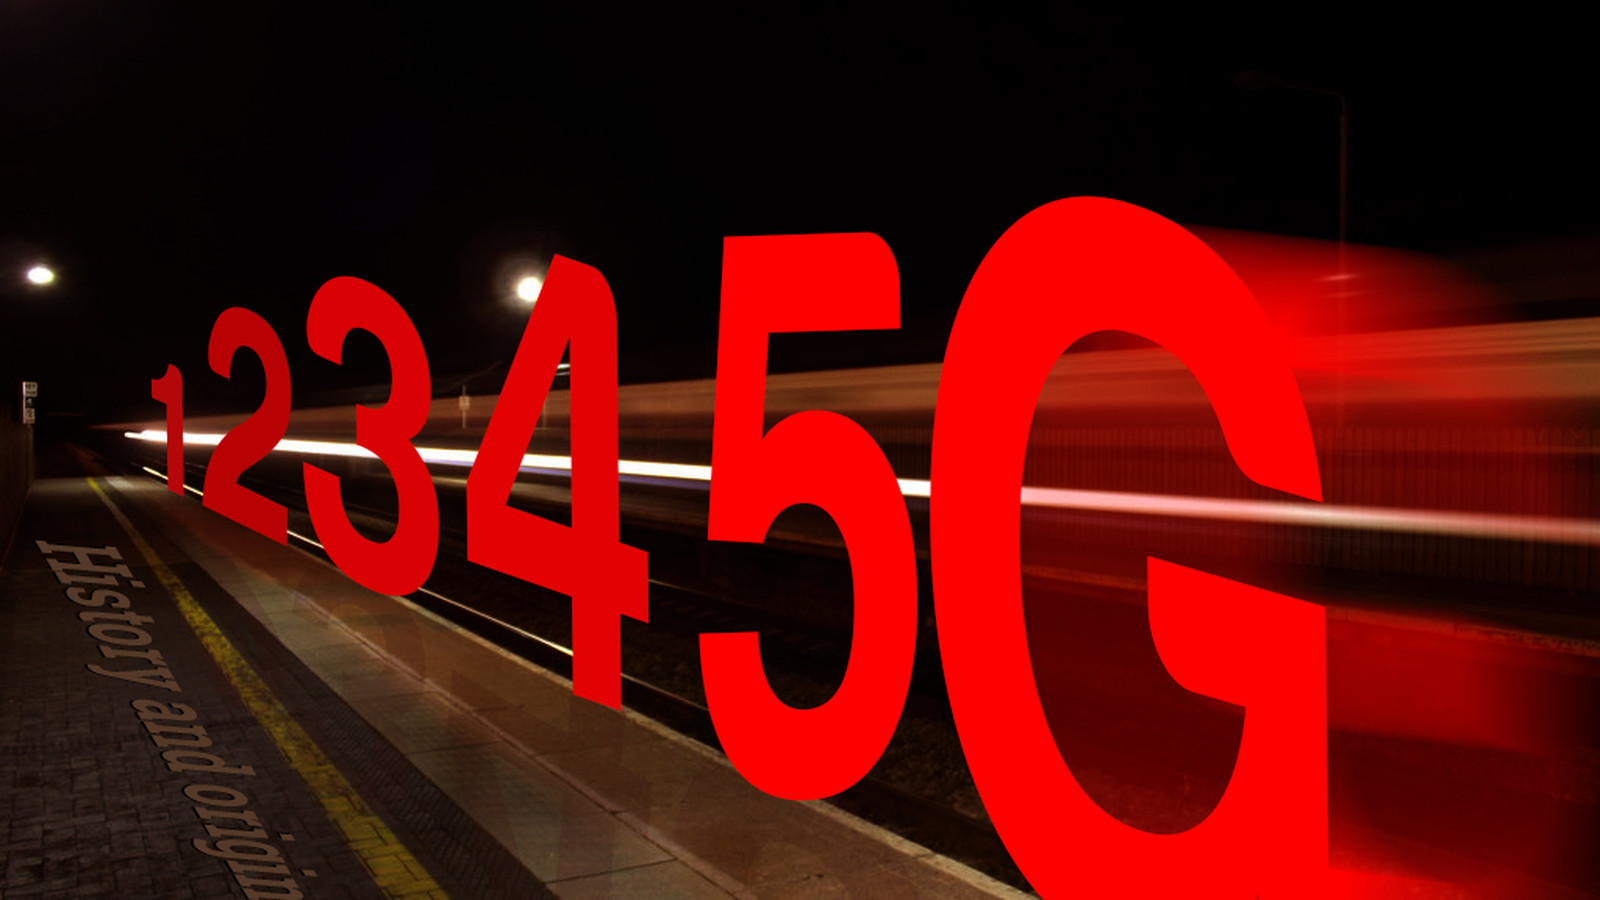 Mobile Technology: What Is 5G?